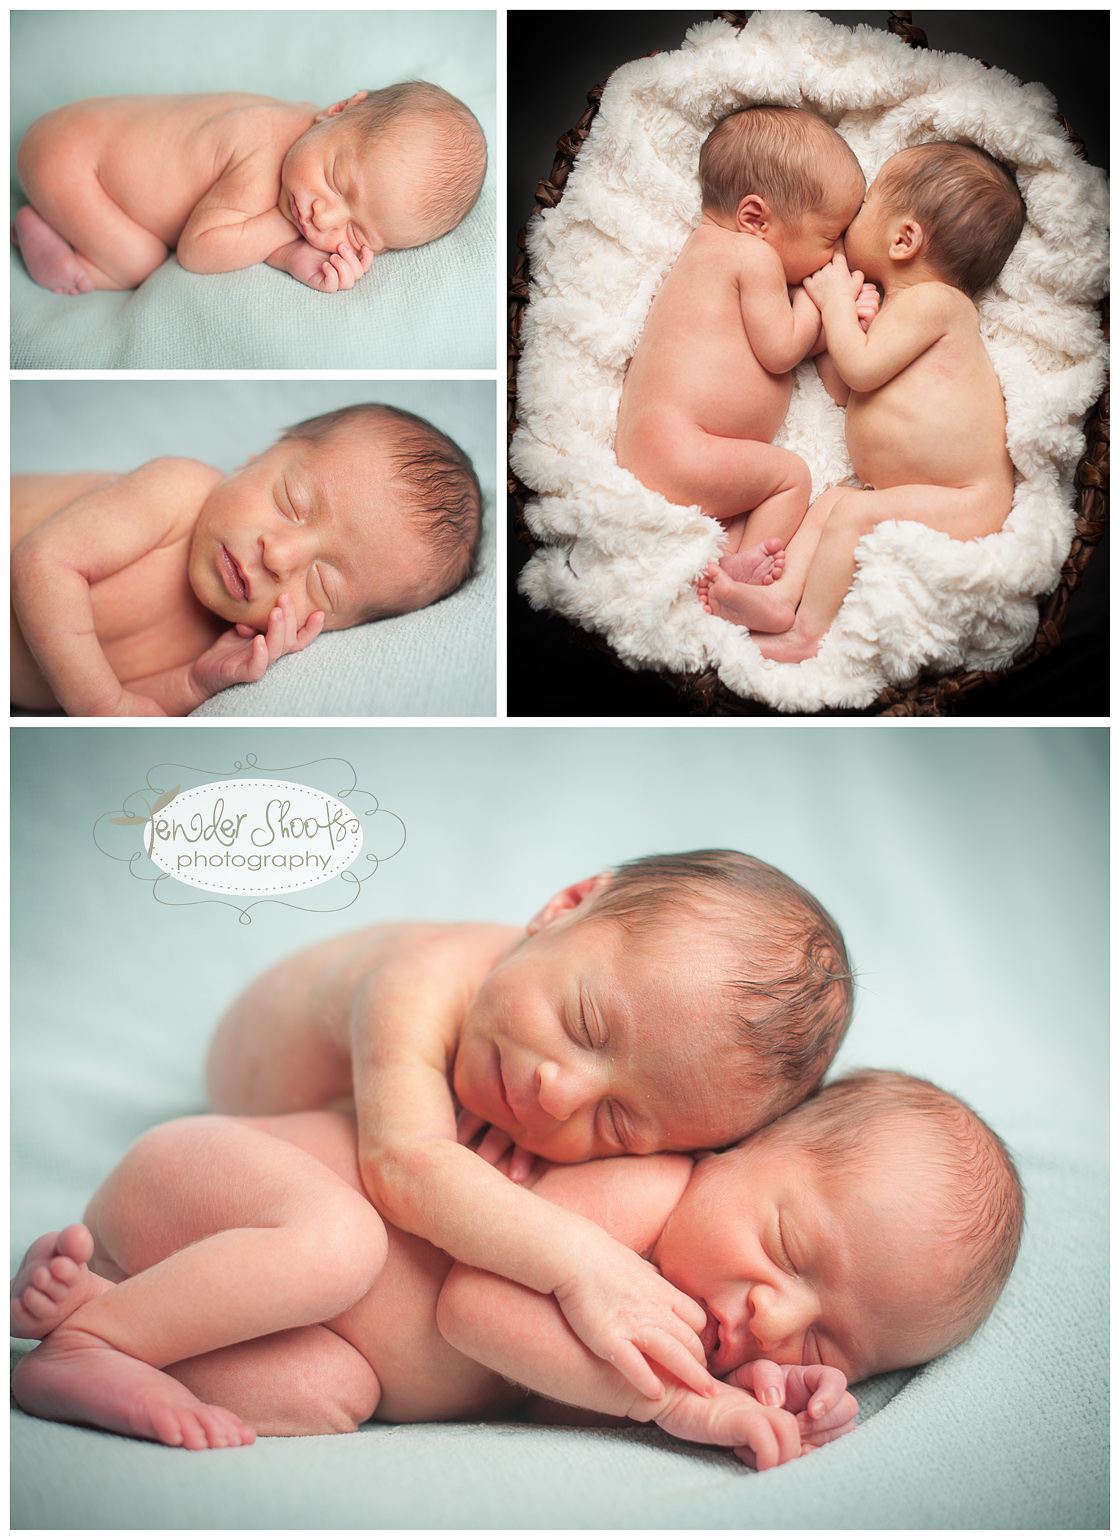 Tender Shoots Photography Newborn Twin Boys